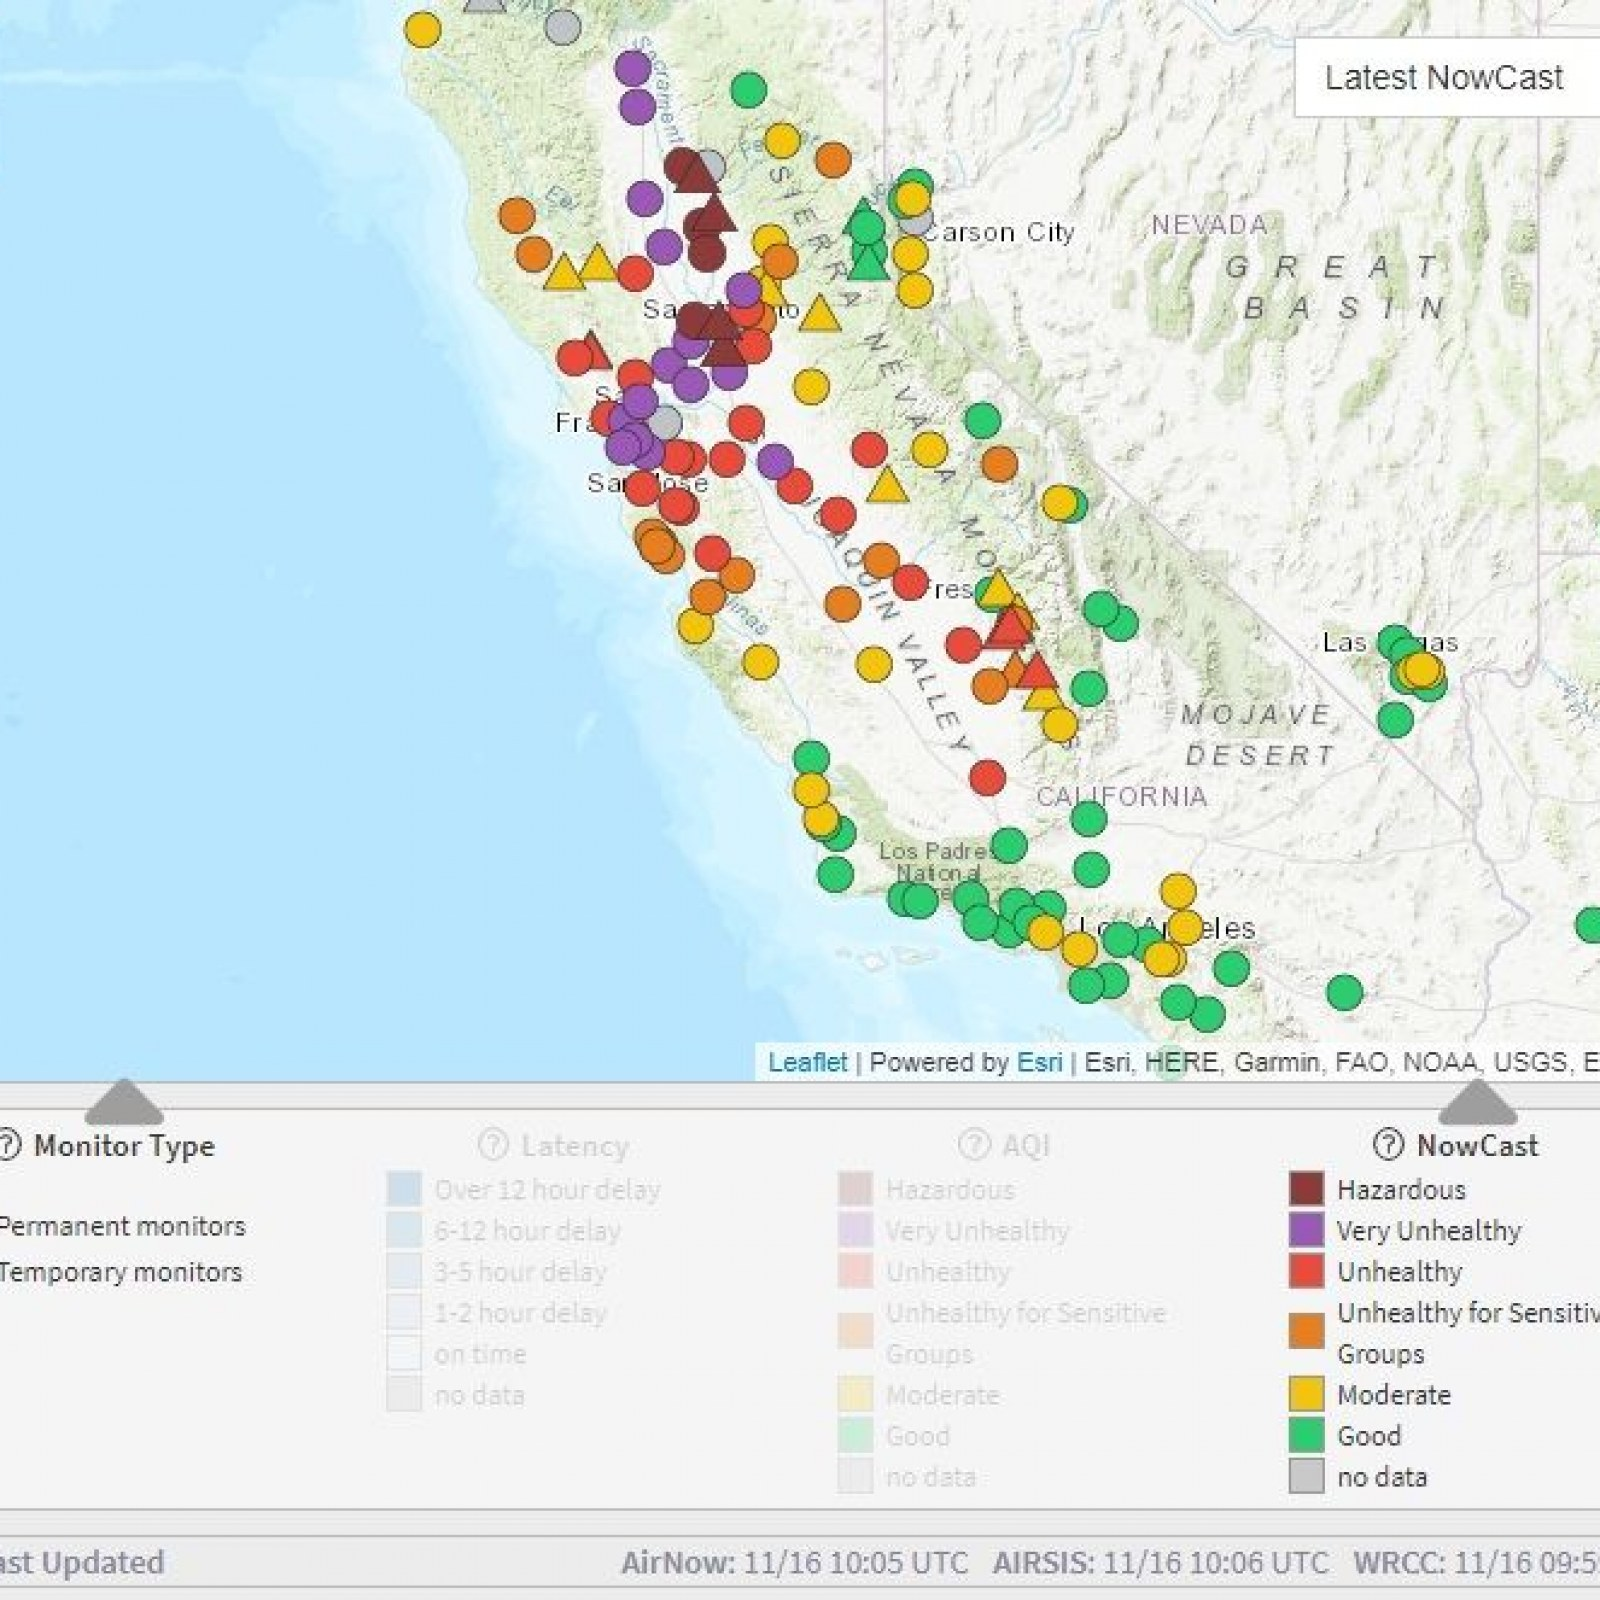 California Fires Air Quality Map: Pollution Update Shows ... on california road map, usa map, nevada city california map, california counties map, mexico baja california peninsula map, state map, carmel california coast map, california flag, california history, illinois on us map, riverside california map, la california map, sacramento california map, san francisco california map, calif map, oakland california map, northern california map, channel islands california map, vintage california map, california on satellite,